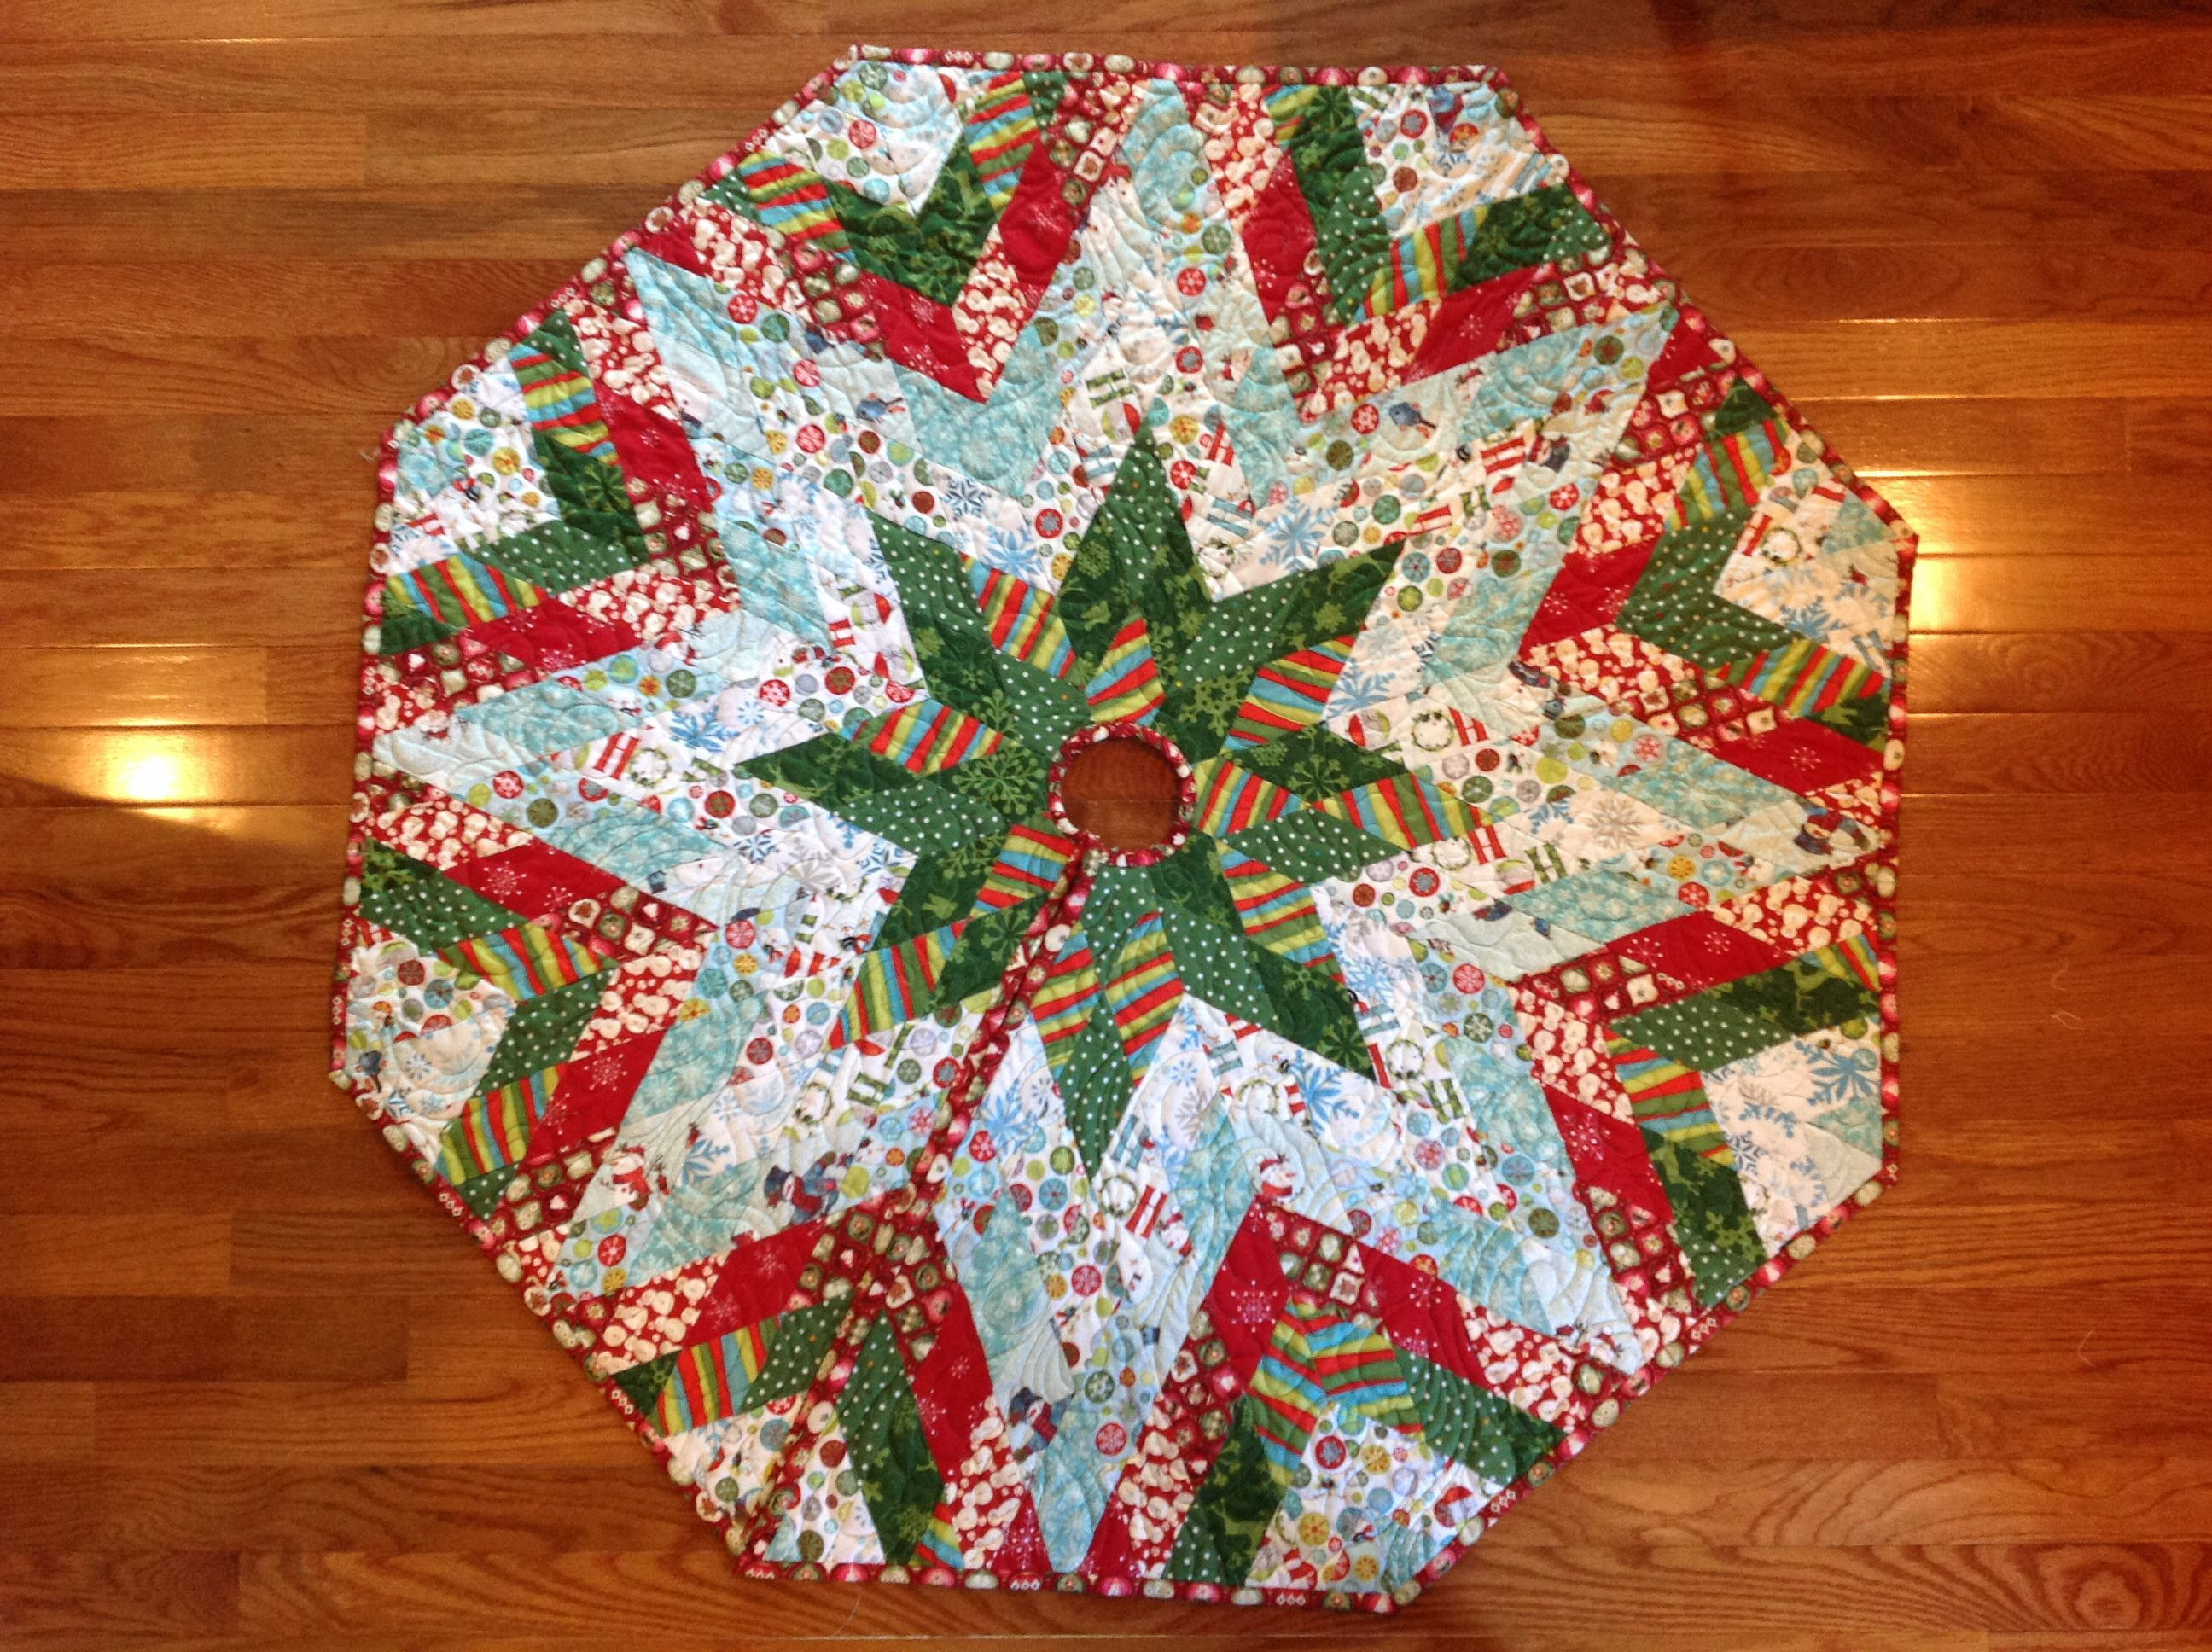 Christmas Tree Skirt Pattern Luxury Christmas Tree Skirt Made by English Paper Piecing I Used Of Top 49 Images Christmas Tree Skirt Pattern